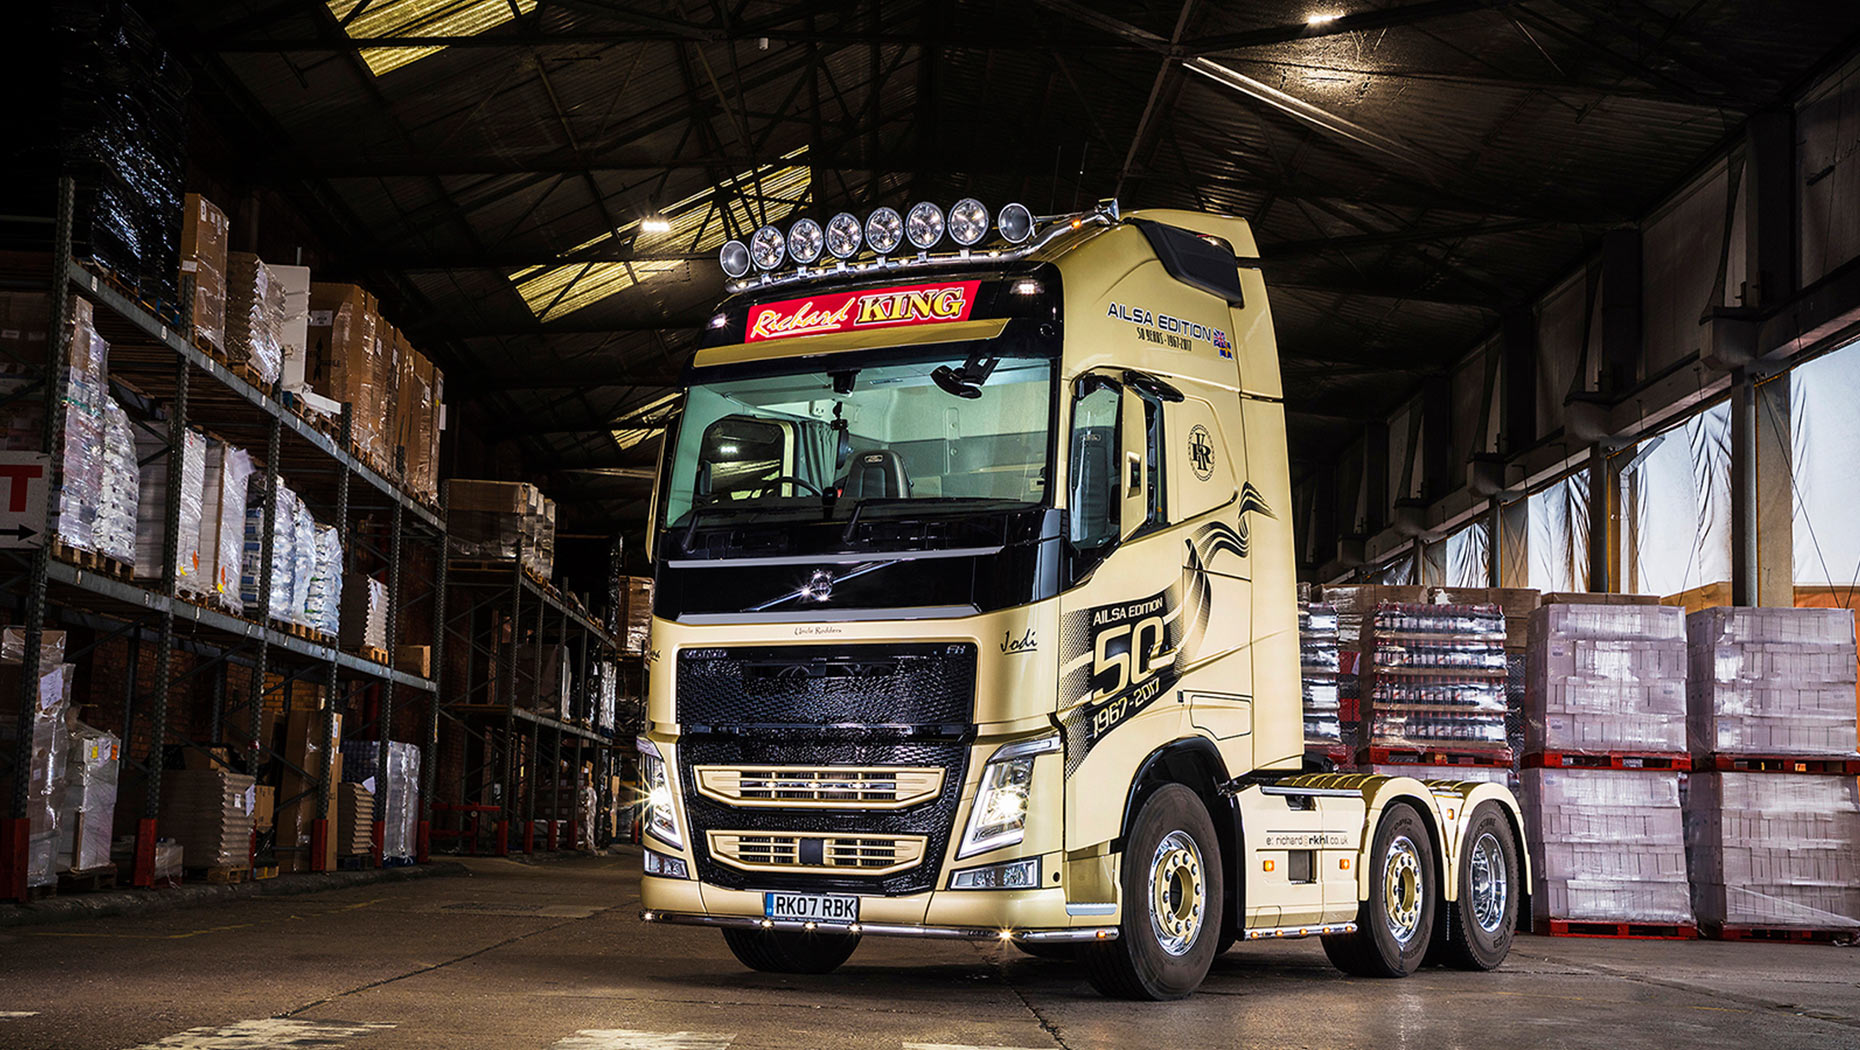 New Ailsa Edition FH tractor unit - one of only 50 special trucks made available as part of Volvo Trucks 50th Anniversary